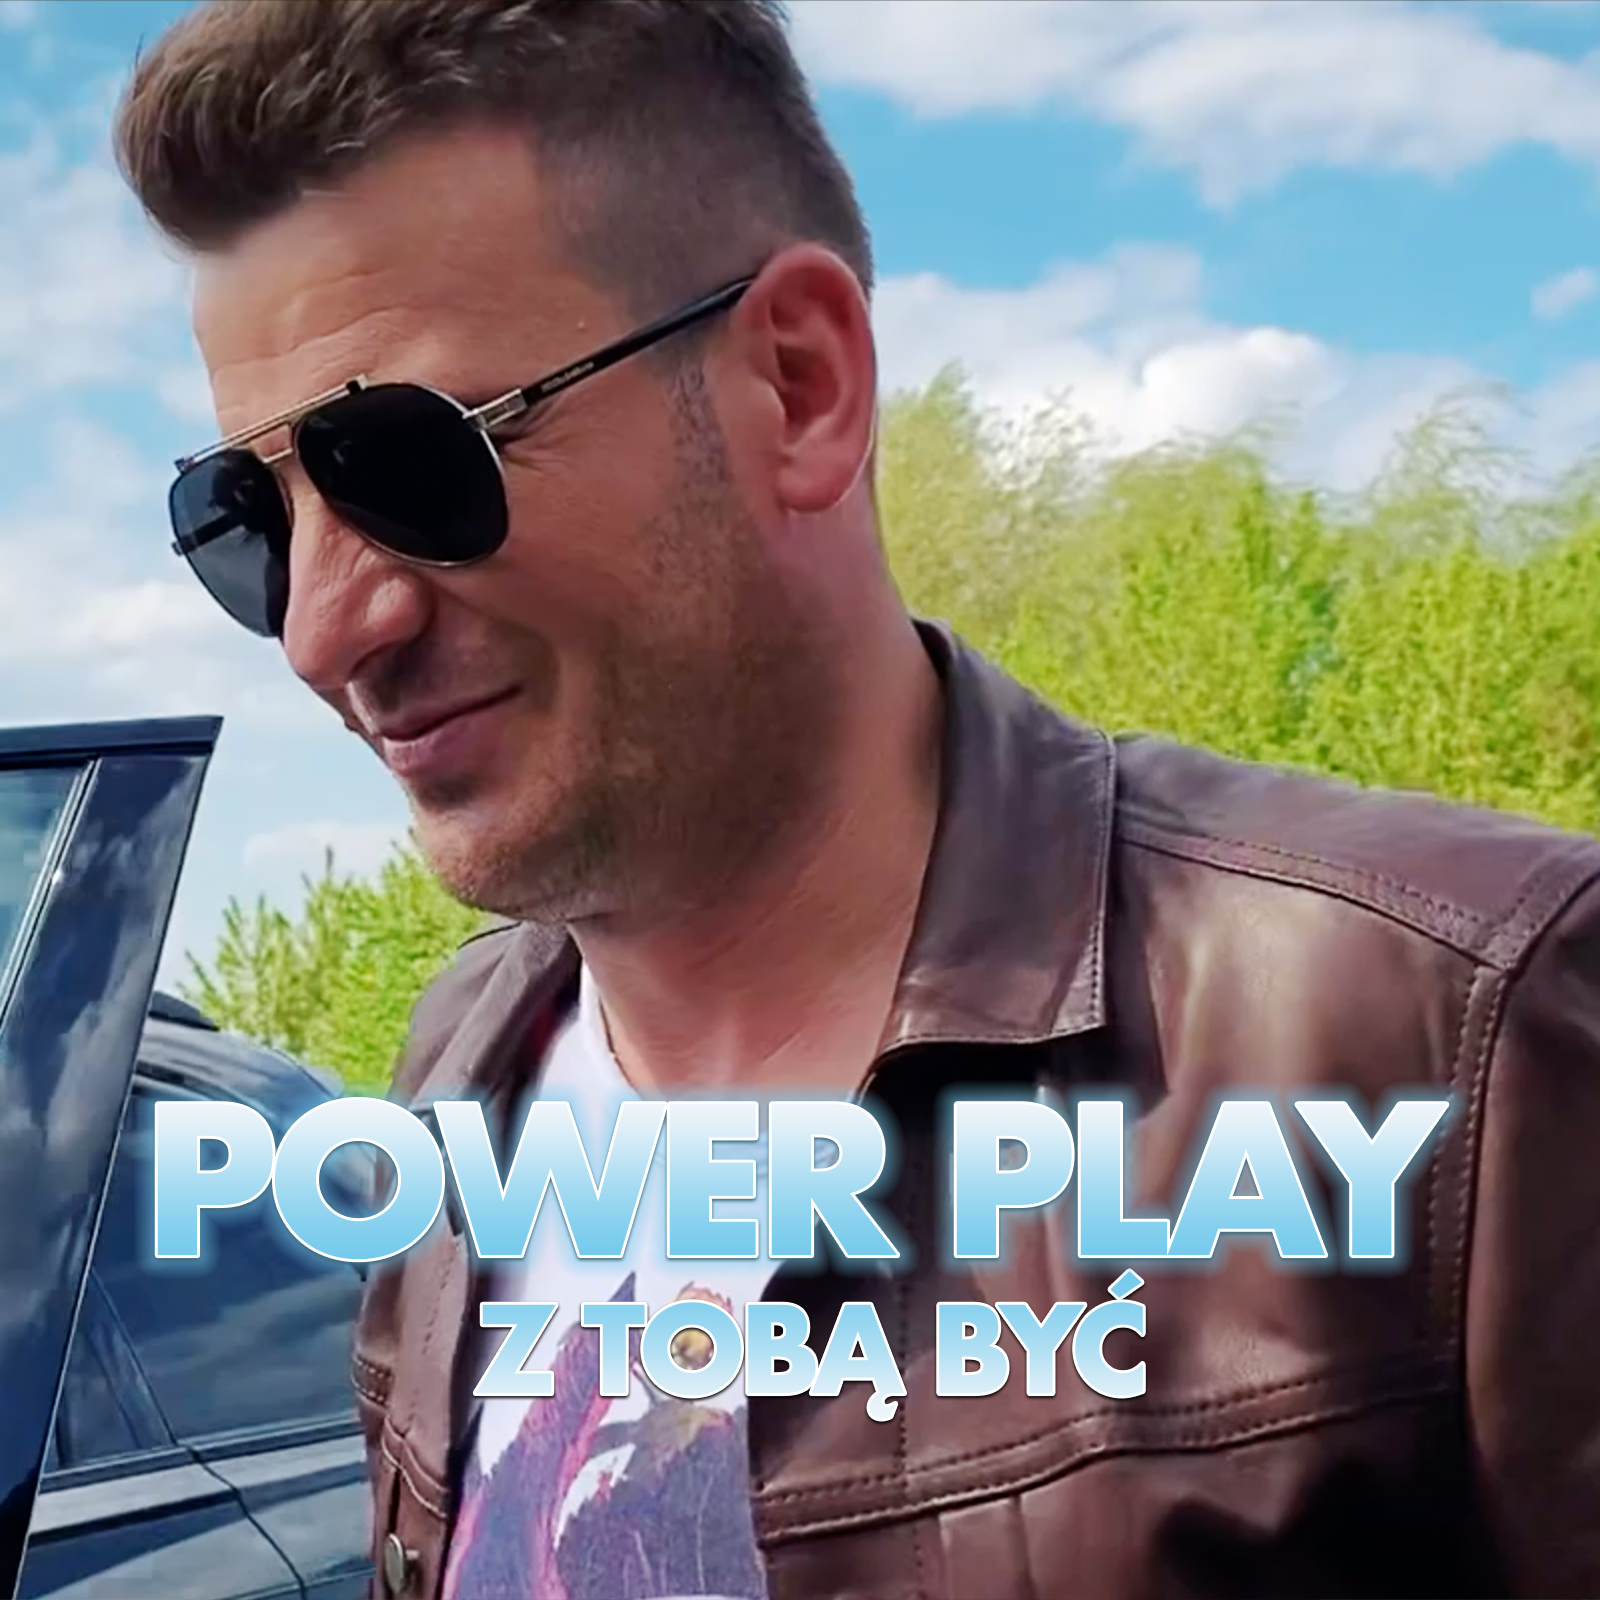 Power Play - Z tobą być